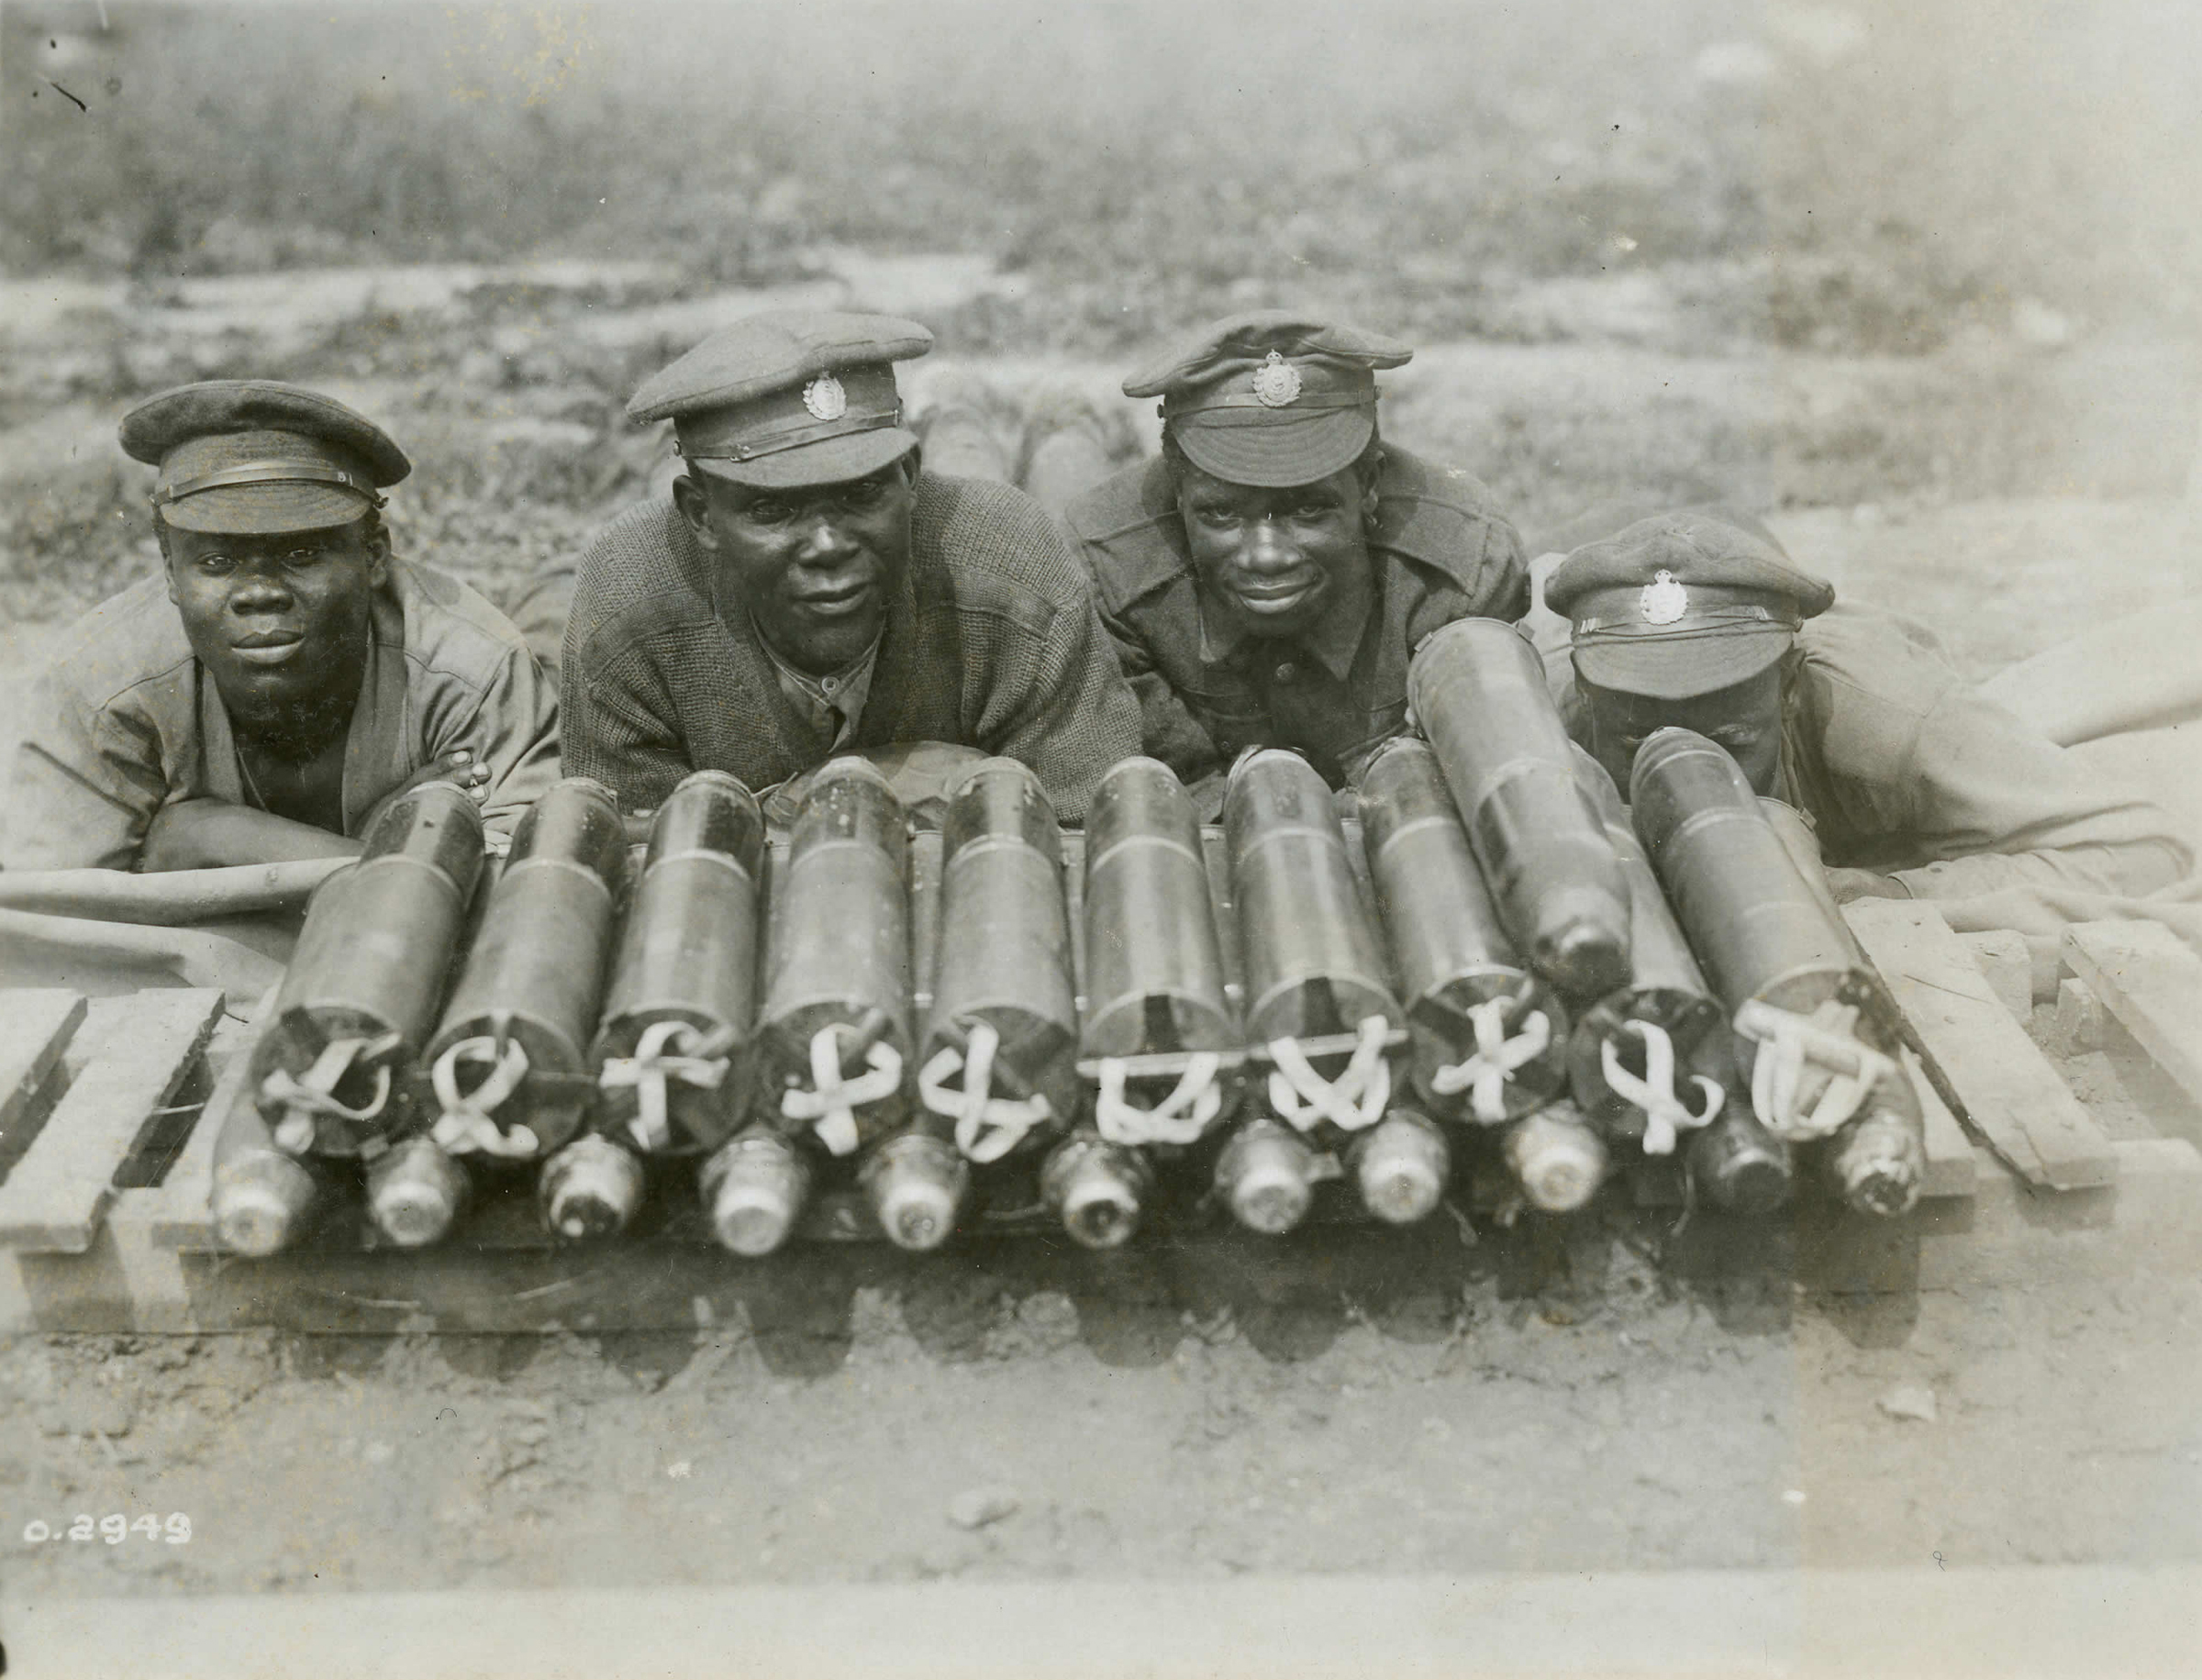 African Canadians pose with ammunition before loading it into tramway cars to be taken up the line. Most black soldiers who served in the Canadian Expeditionary Force remained segregated in labour units. Few were allowed to serve in combatant roles. (library and archives canada)